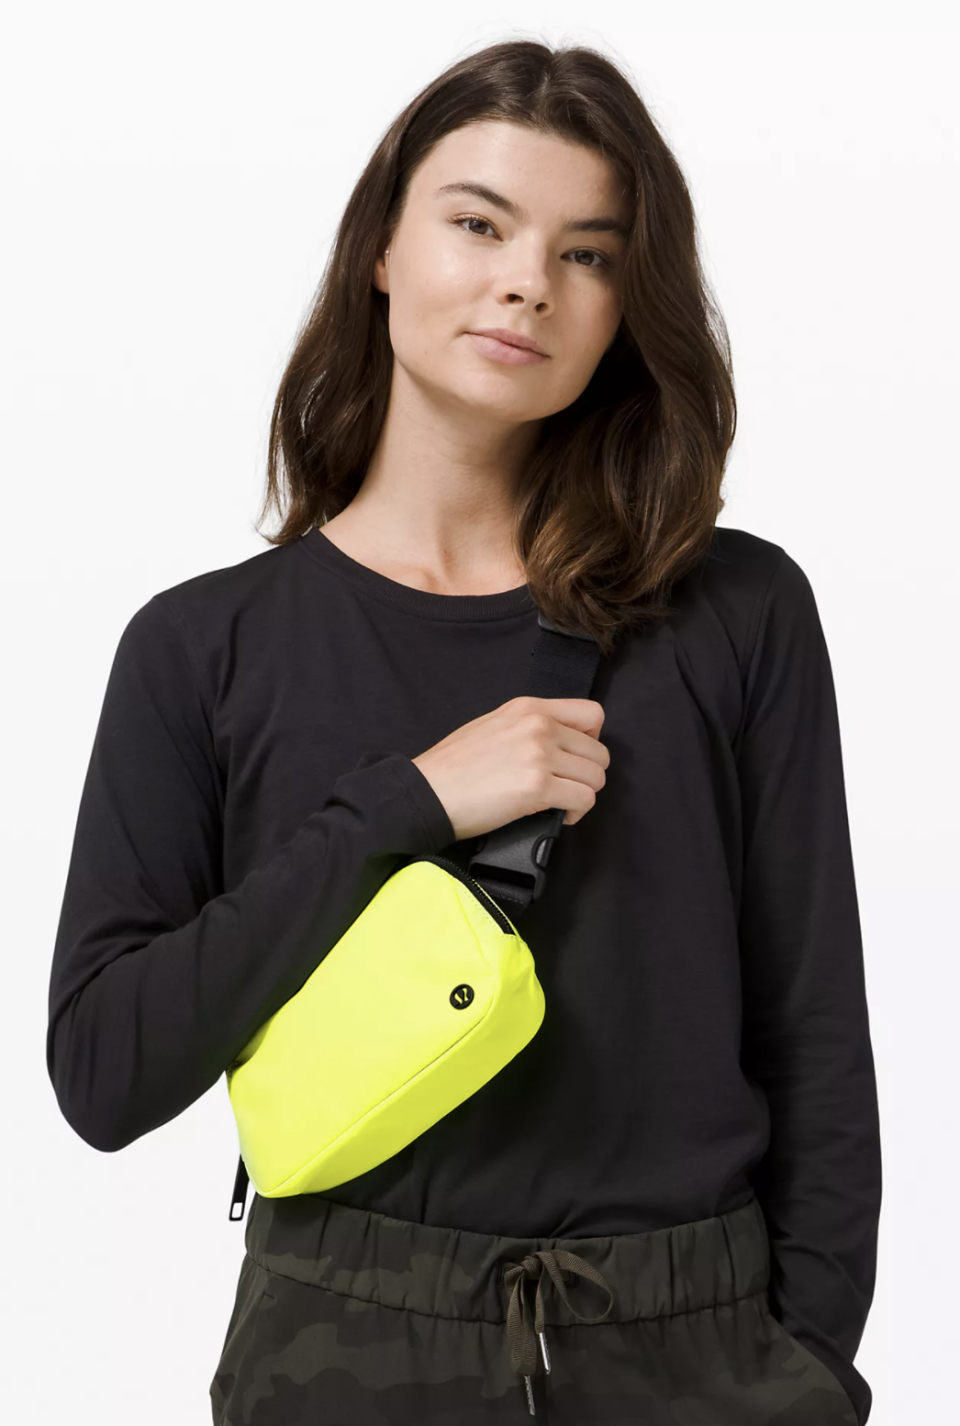 Everywhere Belt Bag 1L - Lululemon, $29 (originally $38)